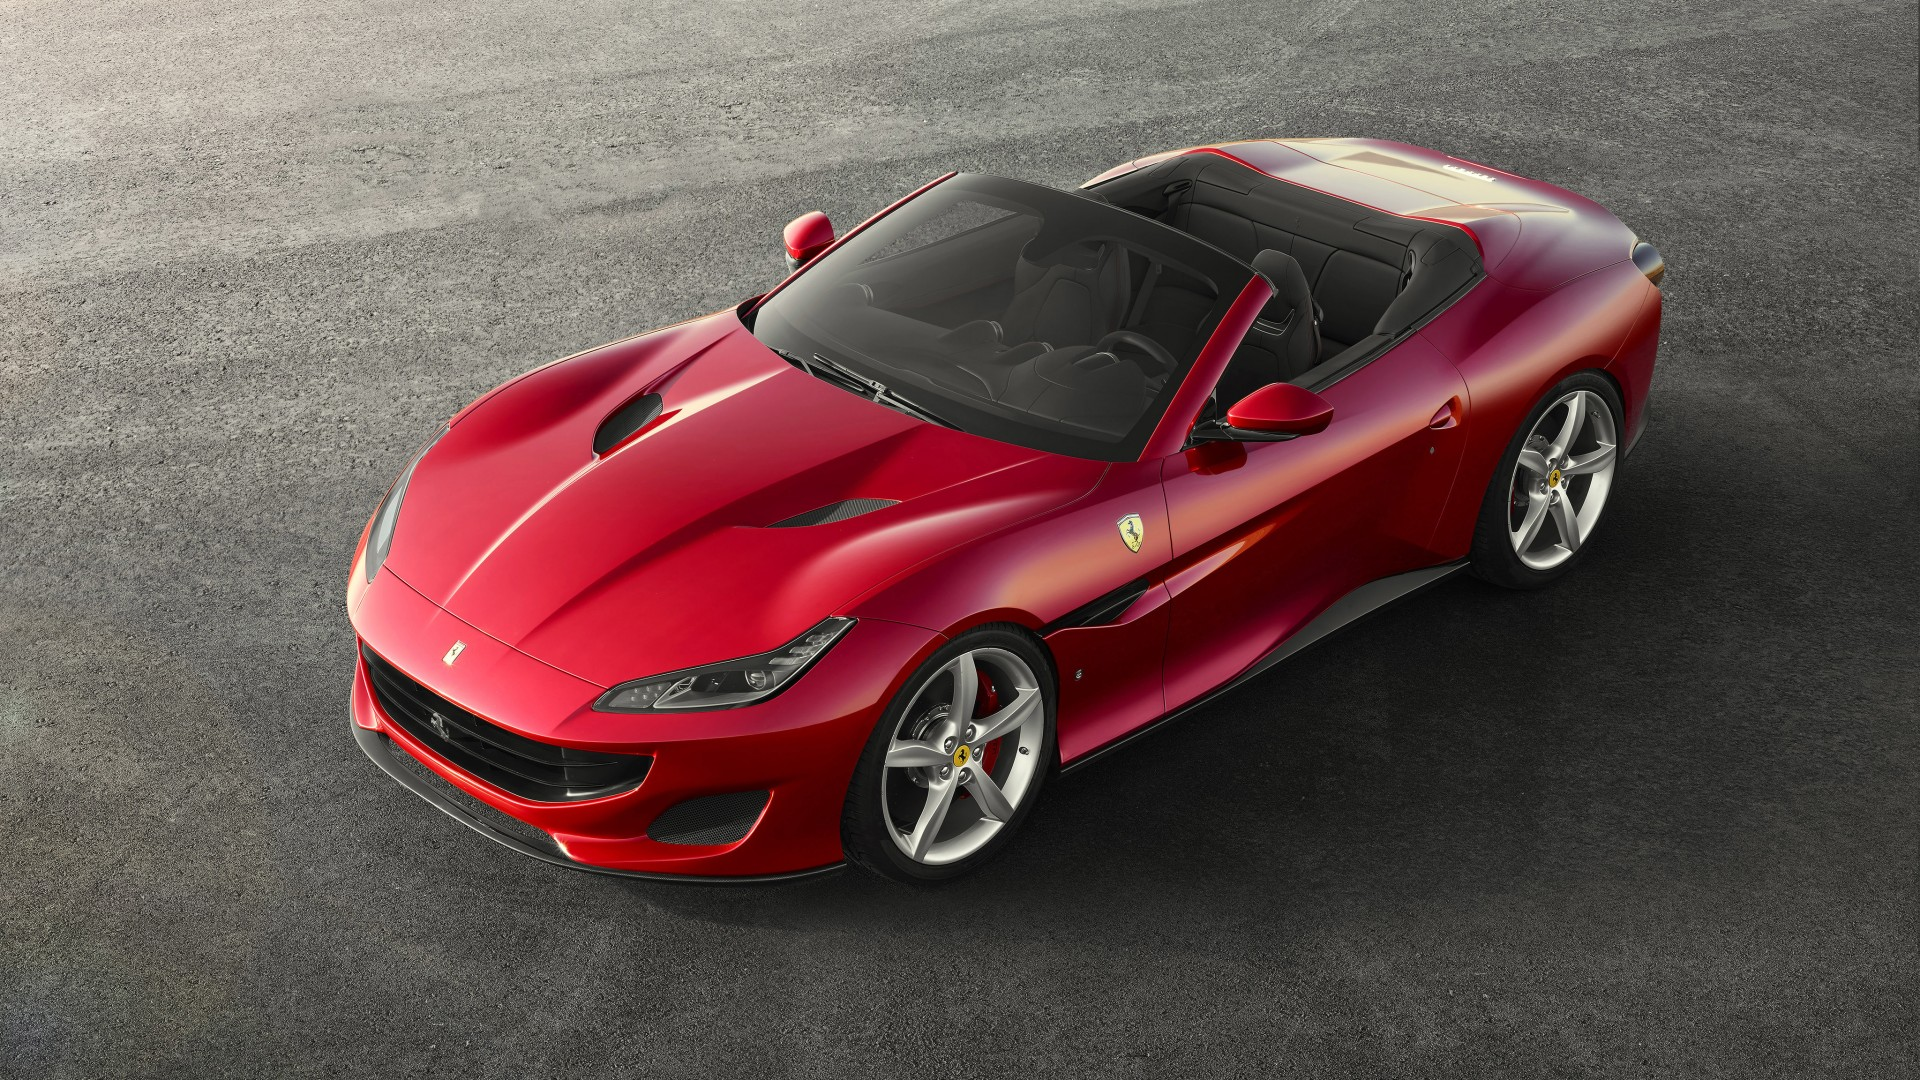 Ferrari Portofino 2018 4K Wallpaper | HD Car Wallpapers ...